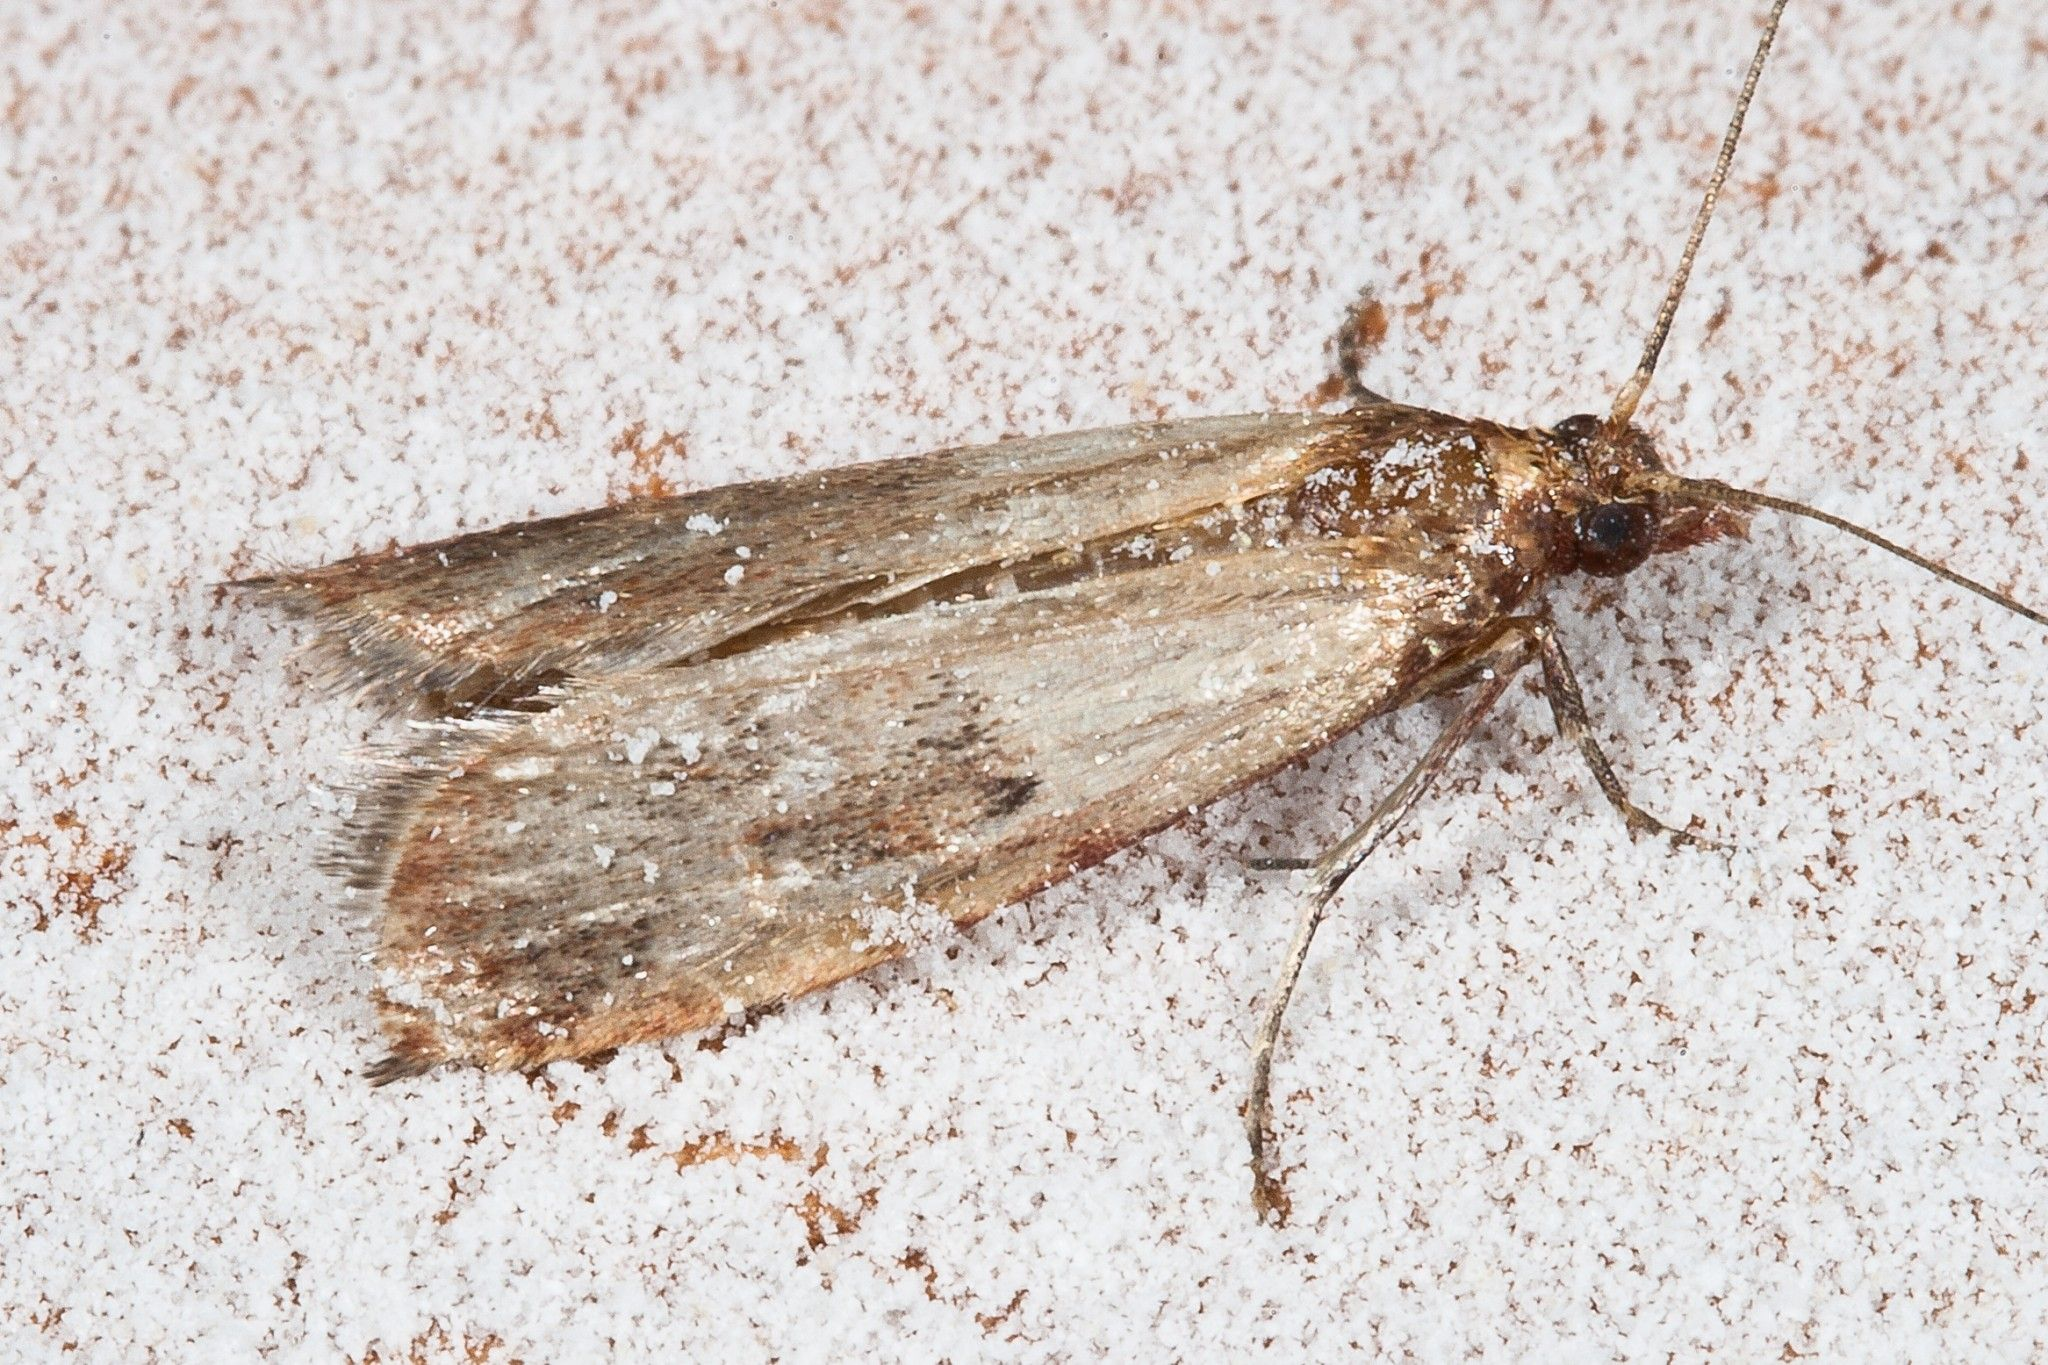 How To Get Rid Of Pantry Moths And Worms Pantry Moths Moth Getting Rid Of Moths